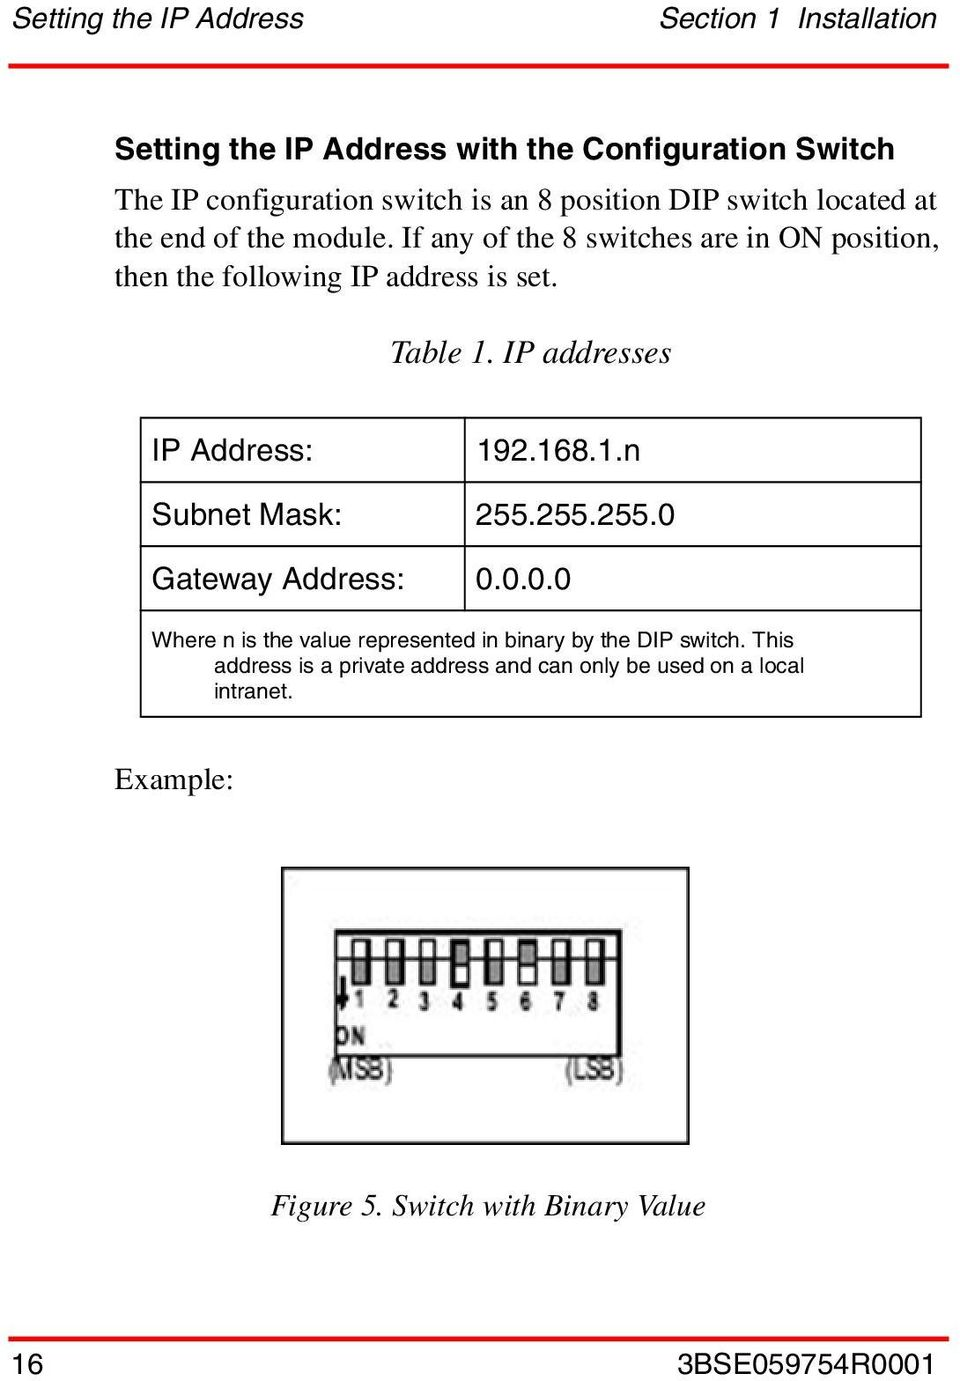 Table 1. IP addresses IP Address: 192.168.1.n Subnet Mask: 255.255.255.0 Gateway Address: 0.0.0.0 Where n is the value represented in binary by the DIP switch.